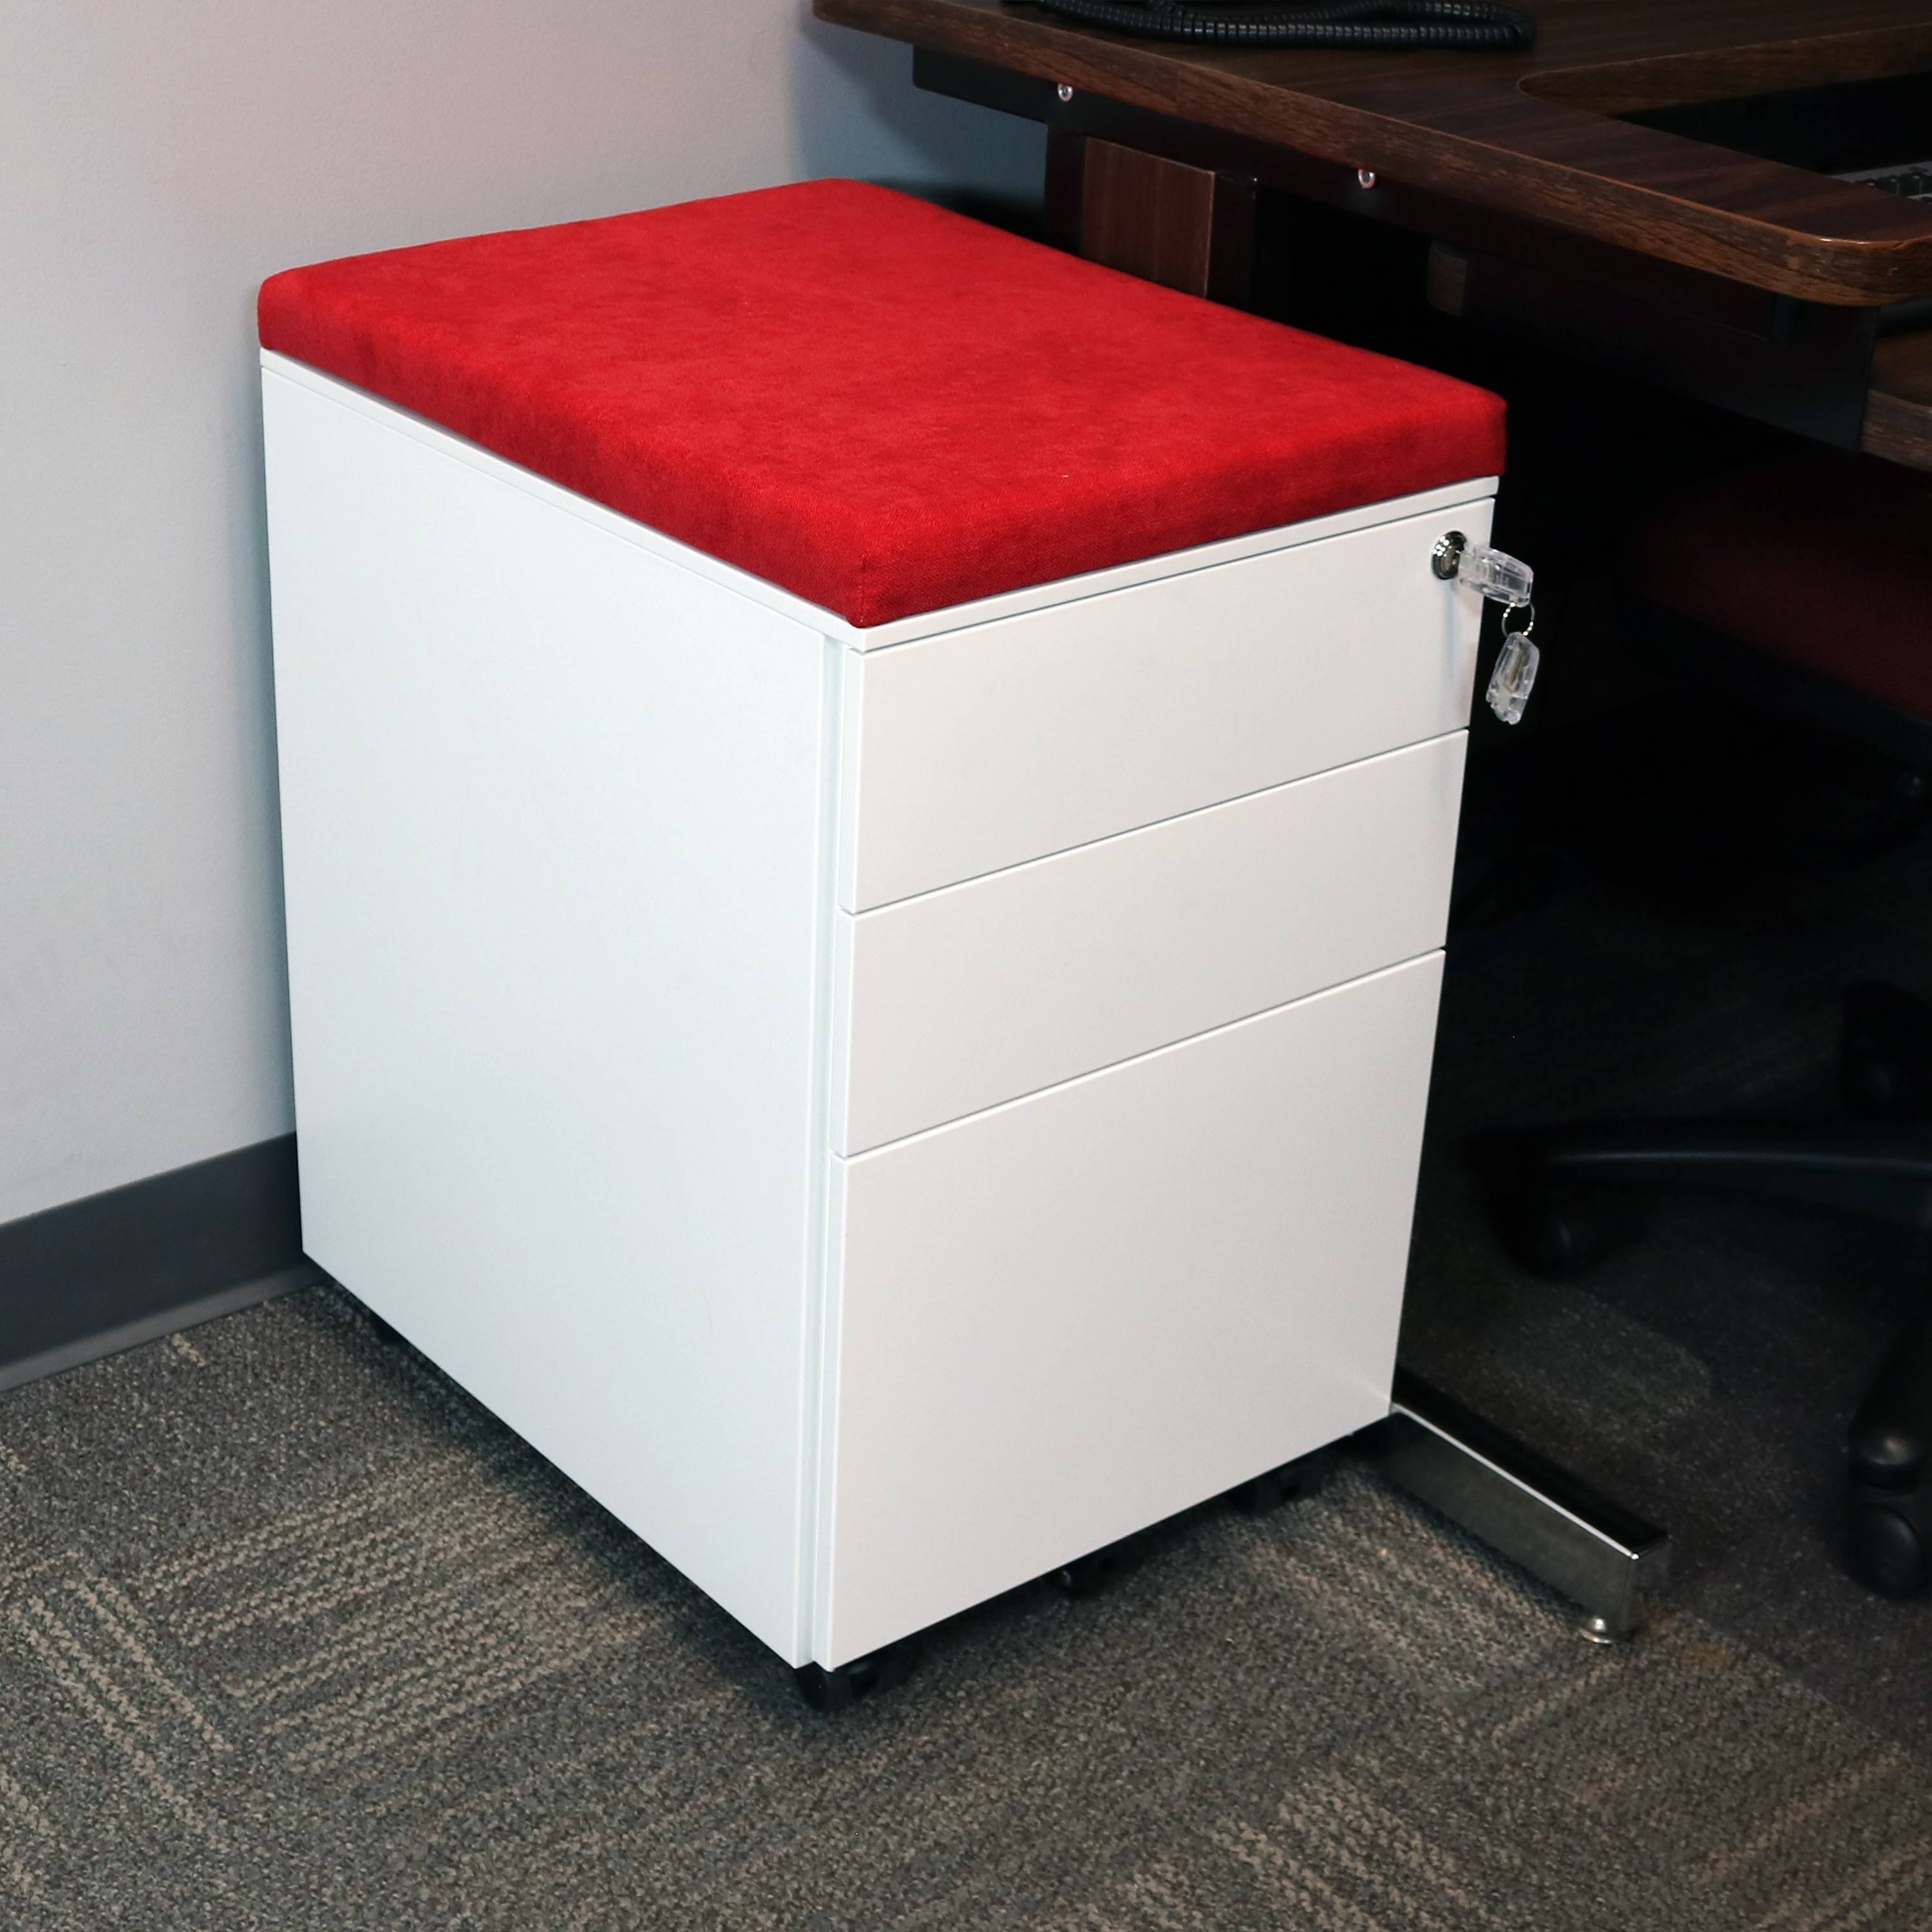 Casl Brands Rolling File Cabinet Lock And Cushion White With Red